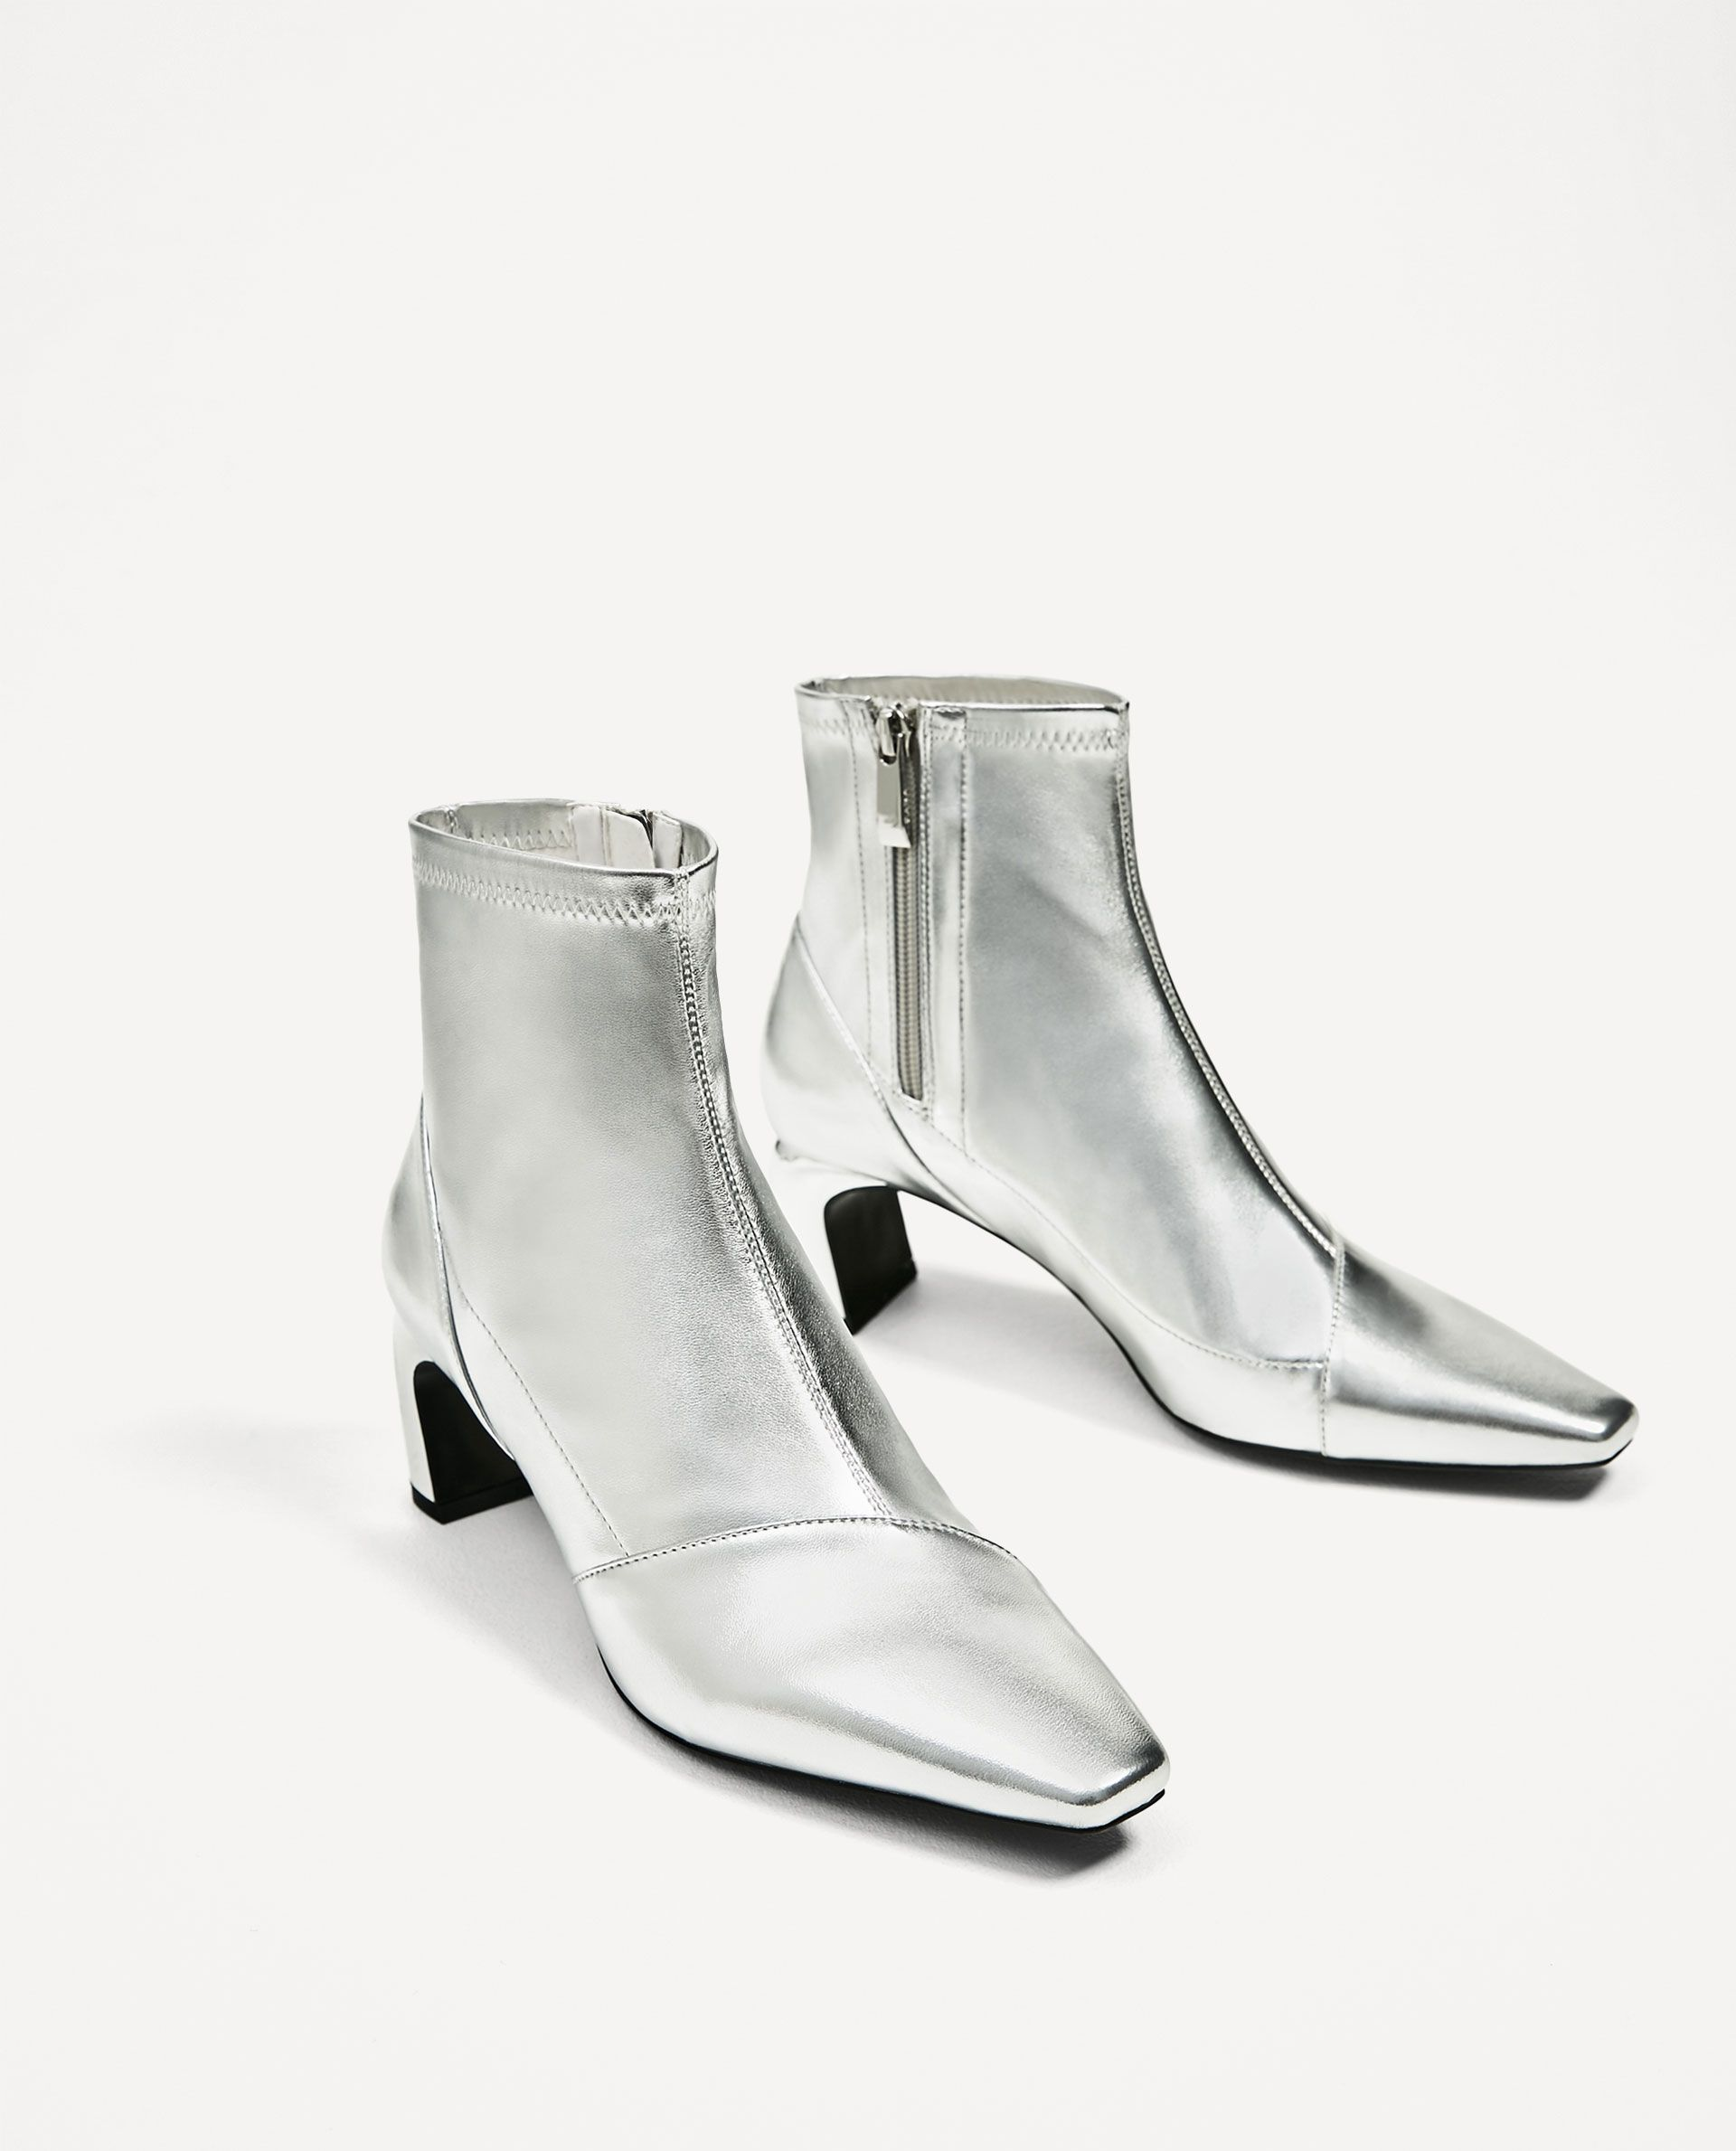 a2be75d13a2 Zara Silver-toned Elastic High Heel Ankle Boots - prefer the block ...